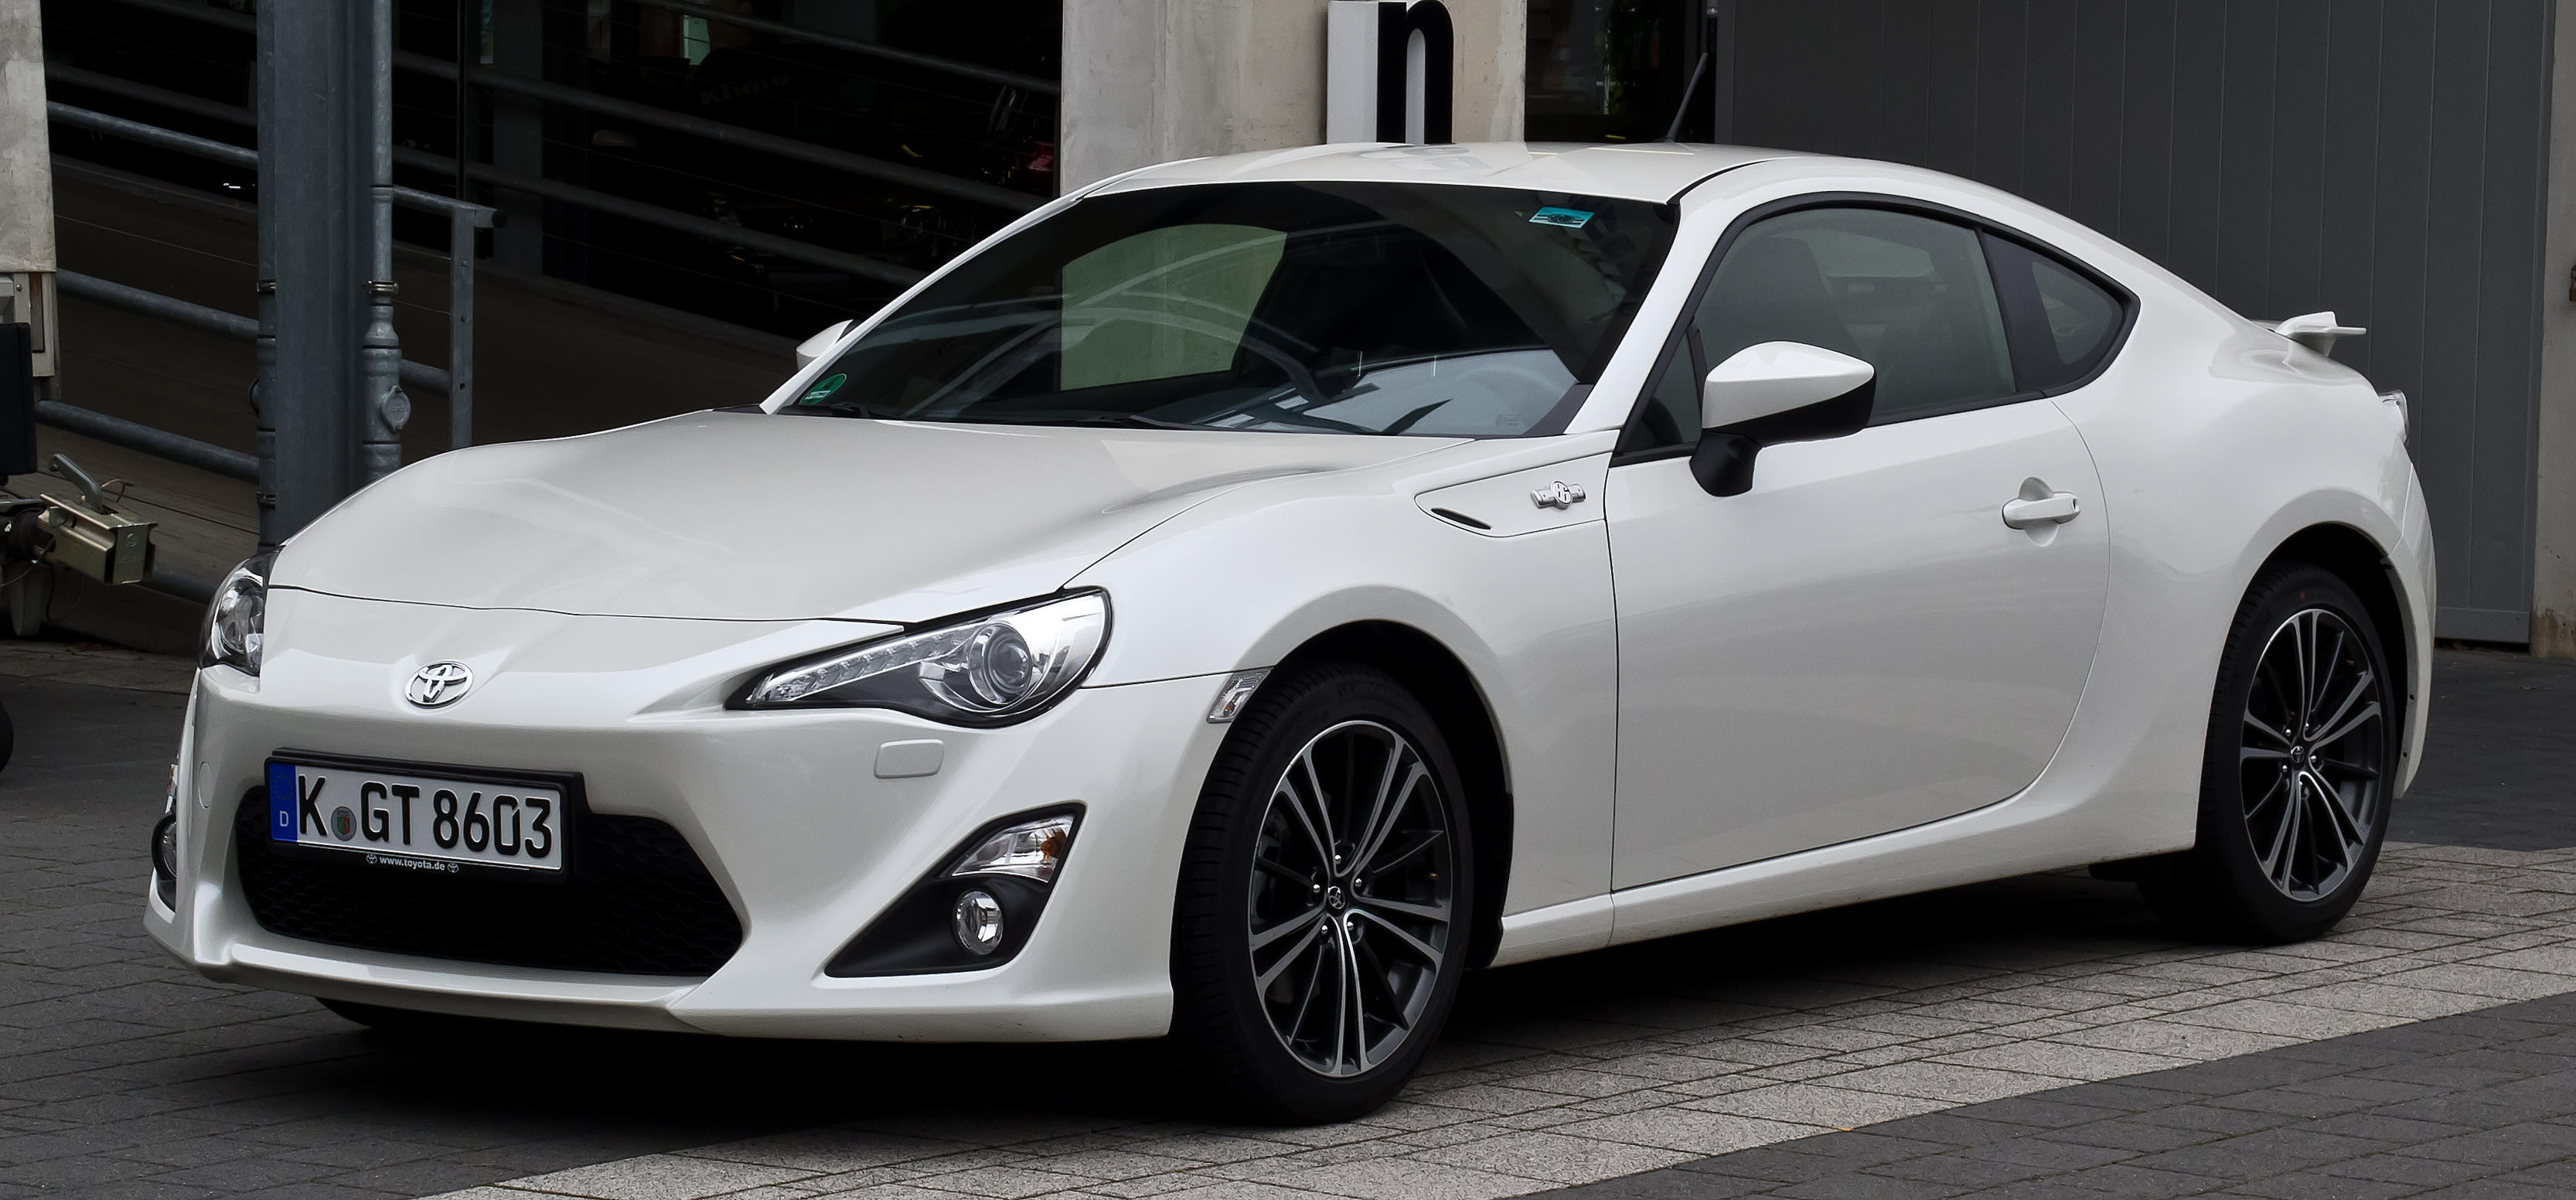 file toyota gt86 frontansicht 17 september 2012 d wikimedia commons. Black Bedroom Furniture Sets. Home Design Ideas